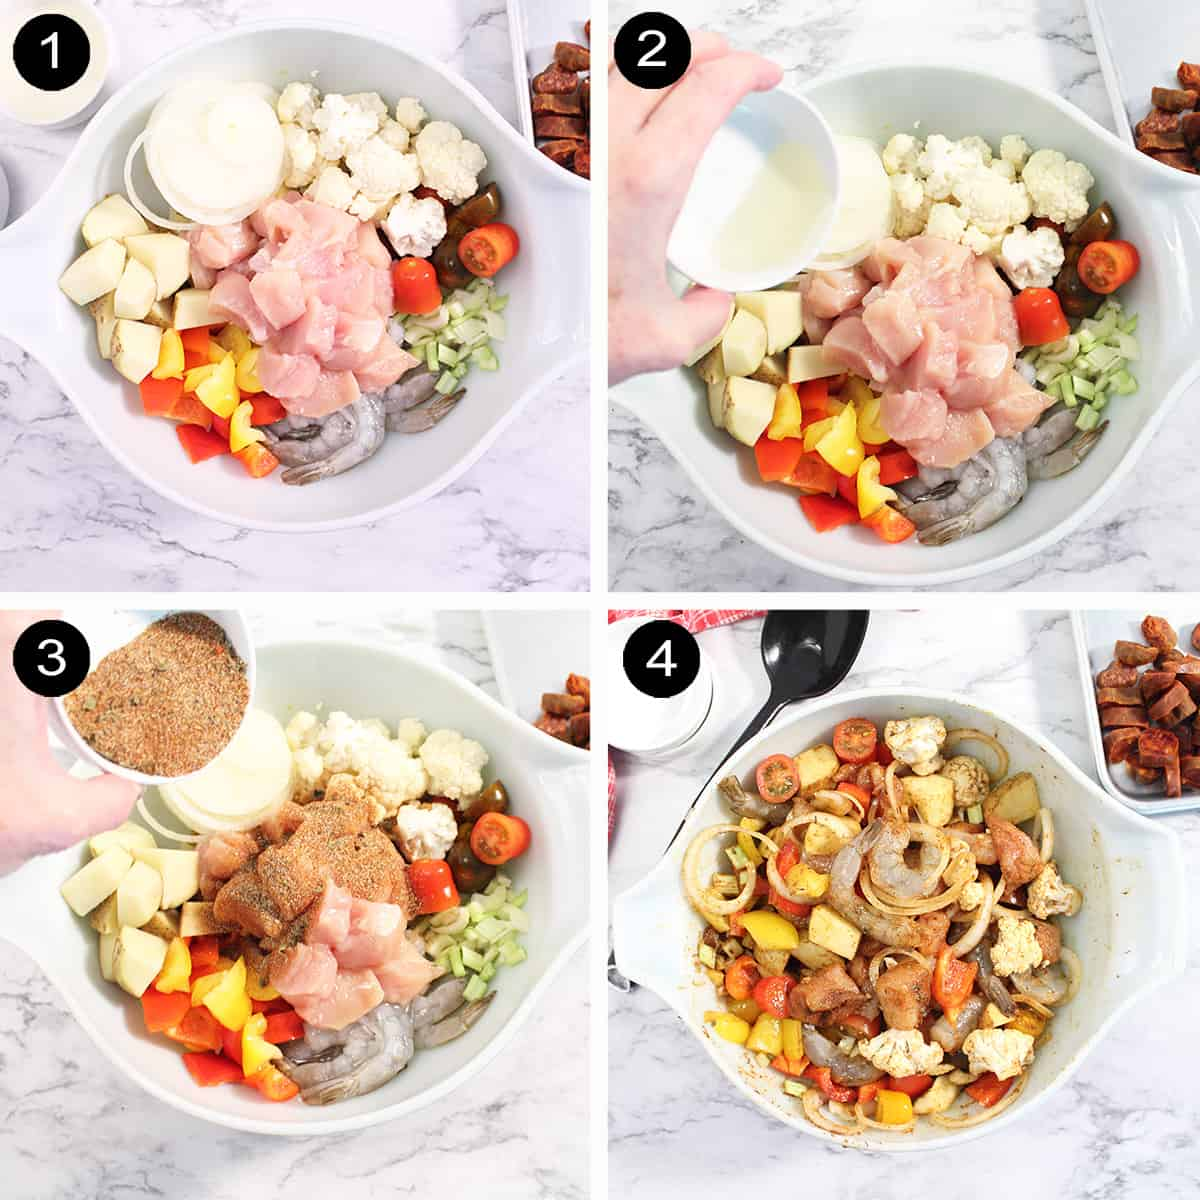 Steps to make mixed grill.